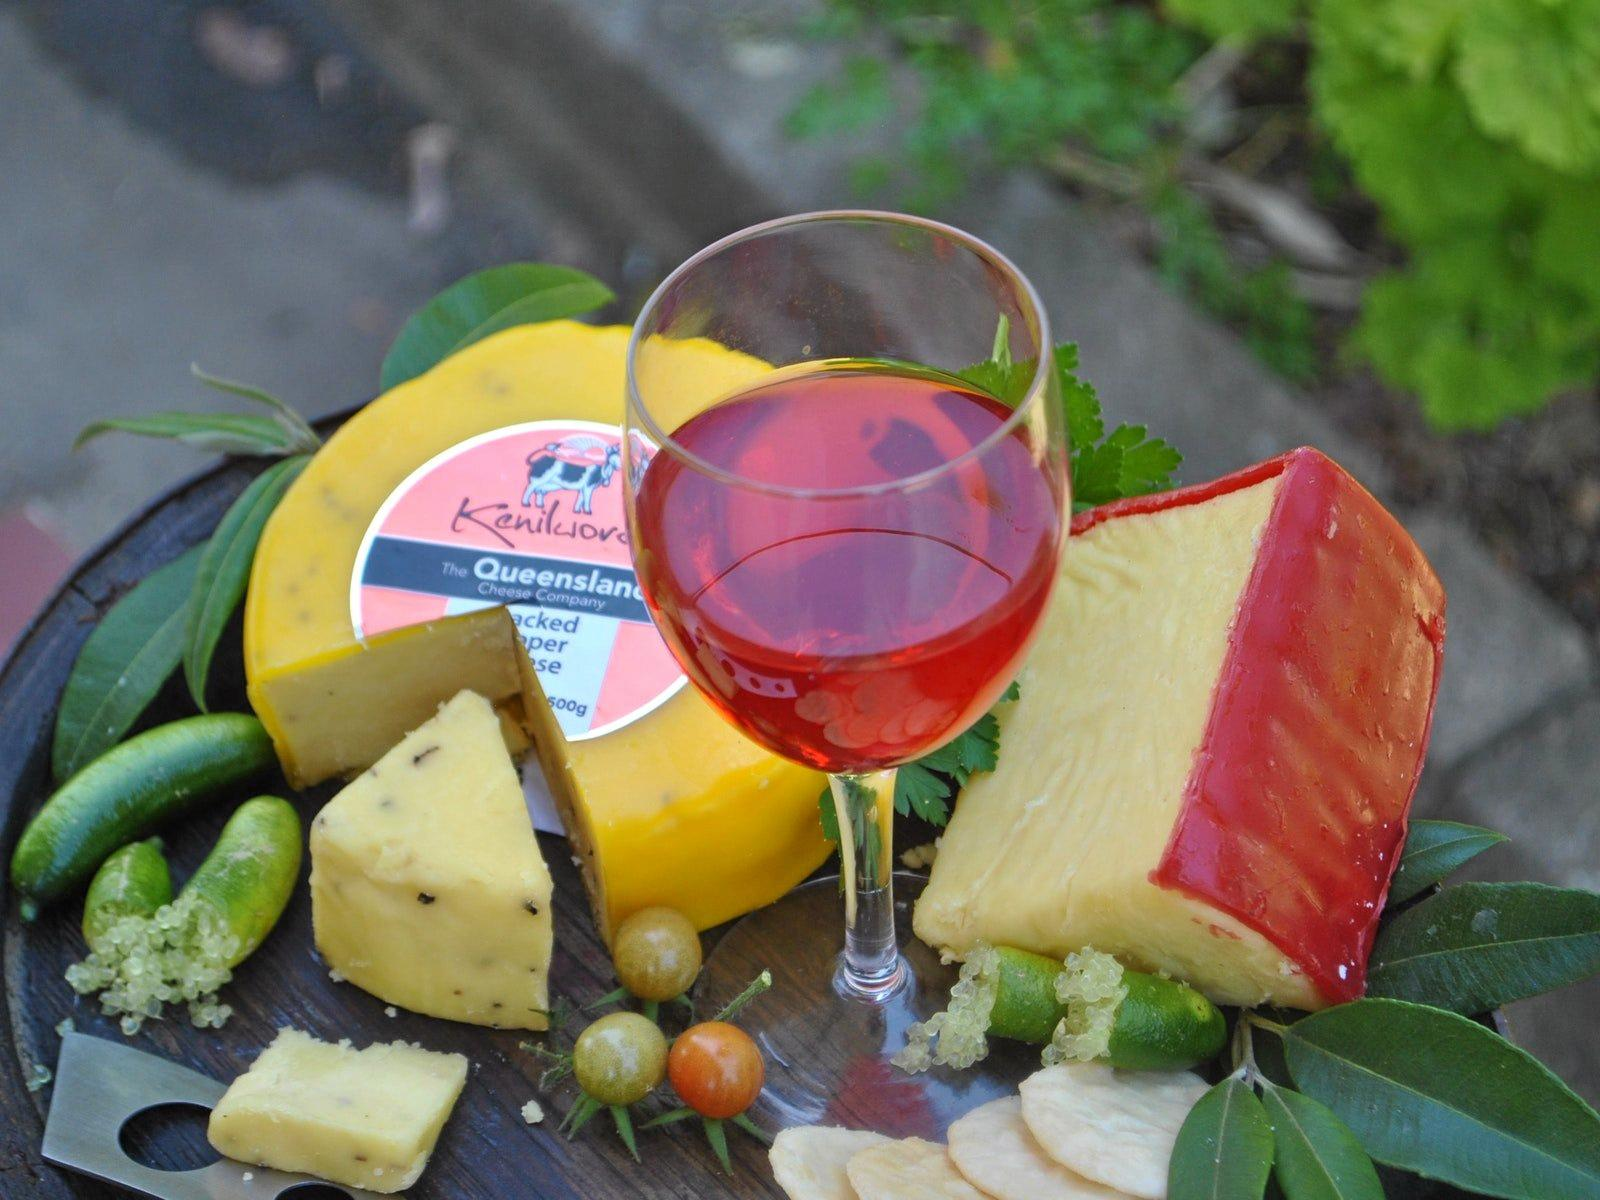 The Kenilworth Cheese, Wine and Food Festival is on Easter Saturday.